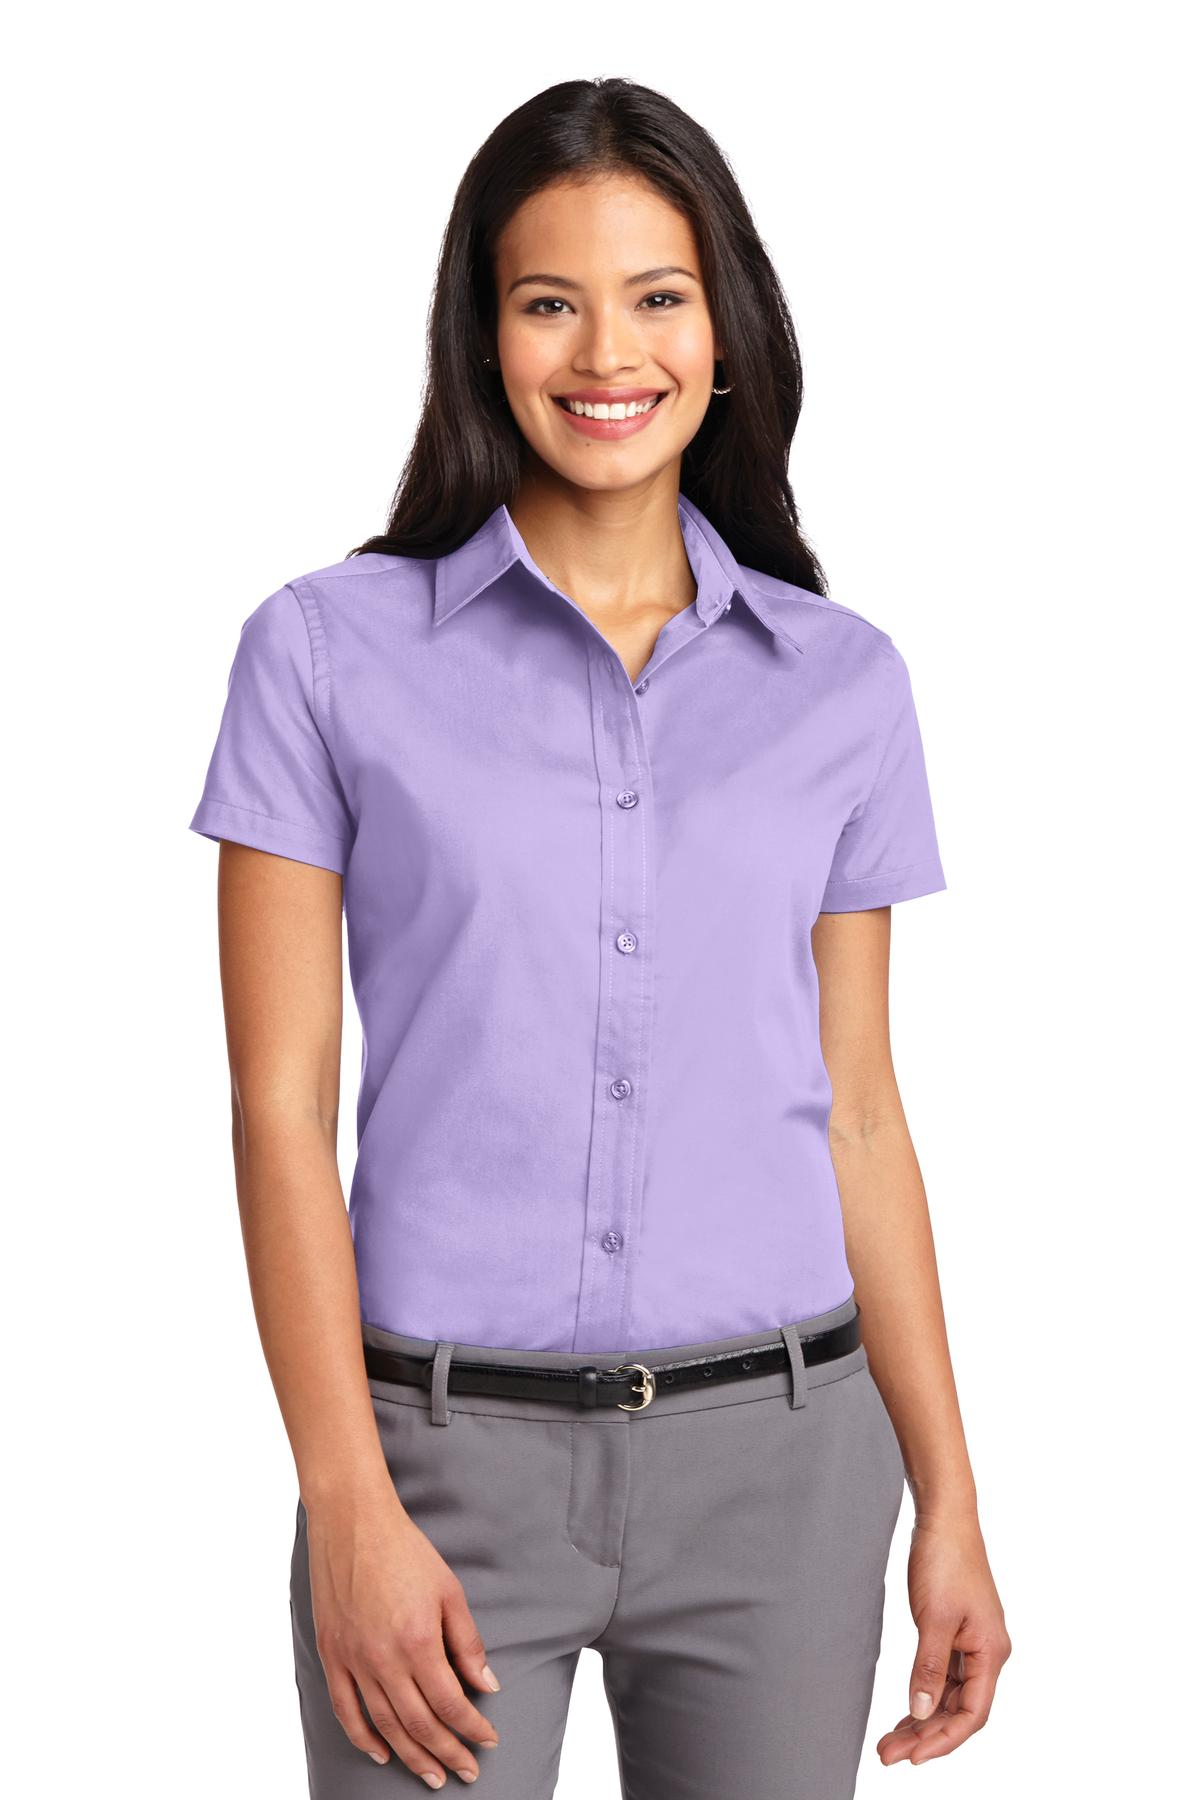 Port Authority ®  Ladies Short Sleeve Easy Care  Shirt.  L508 - Bright Lavender